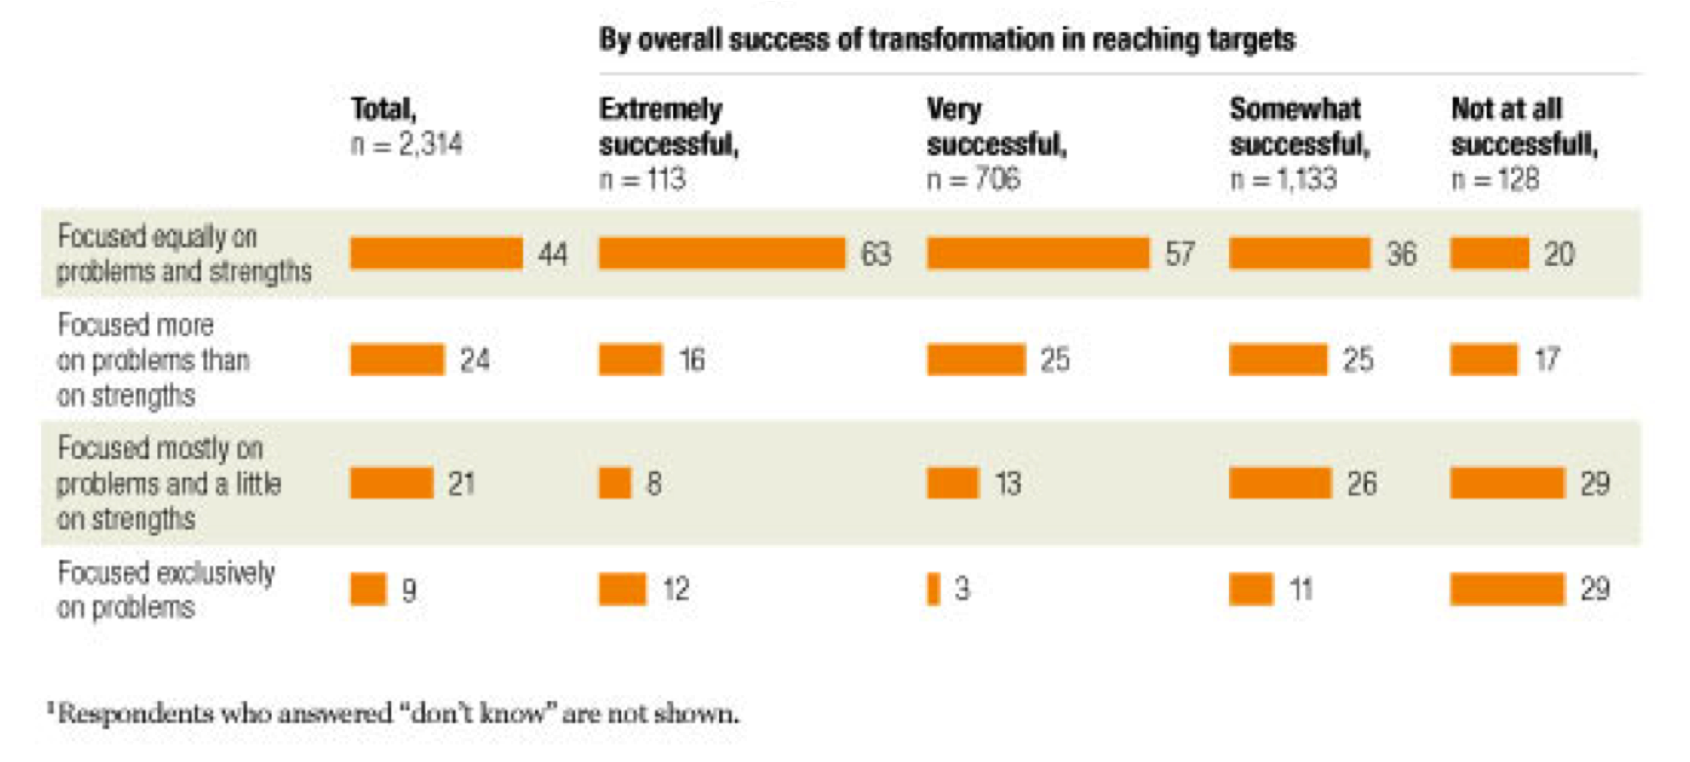 mckinsey-global-transformation-survey-2008